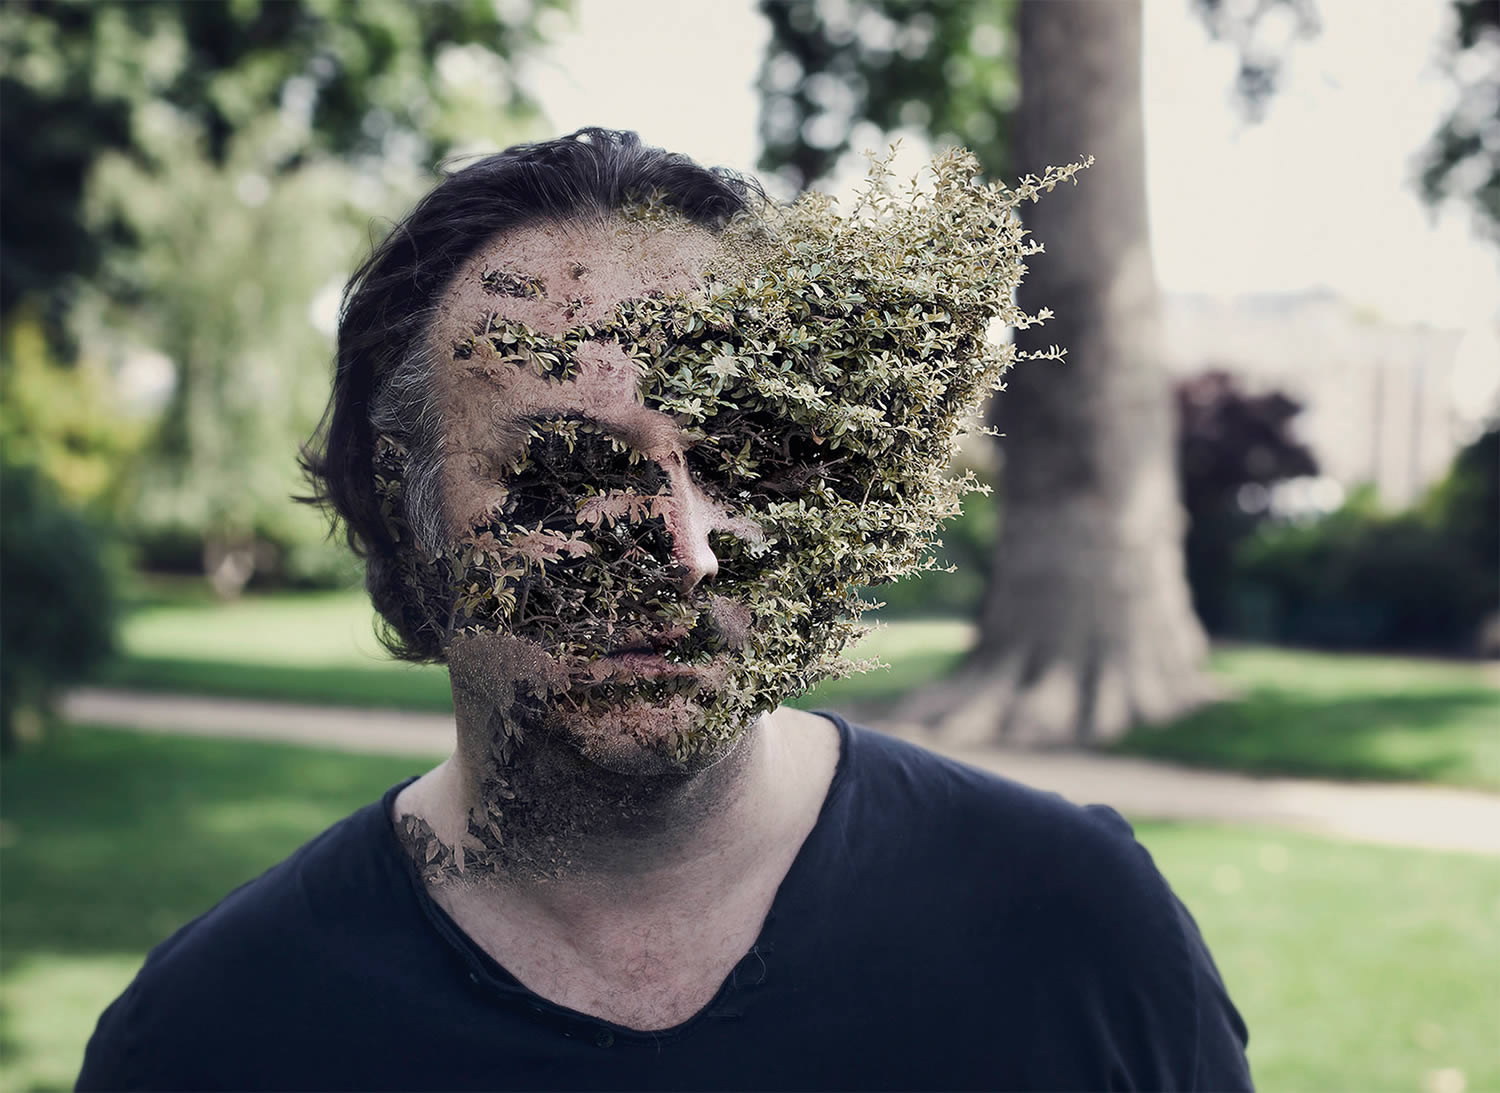 plant man manipulation